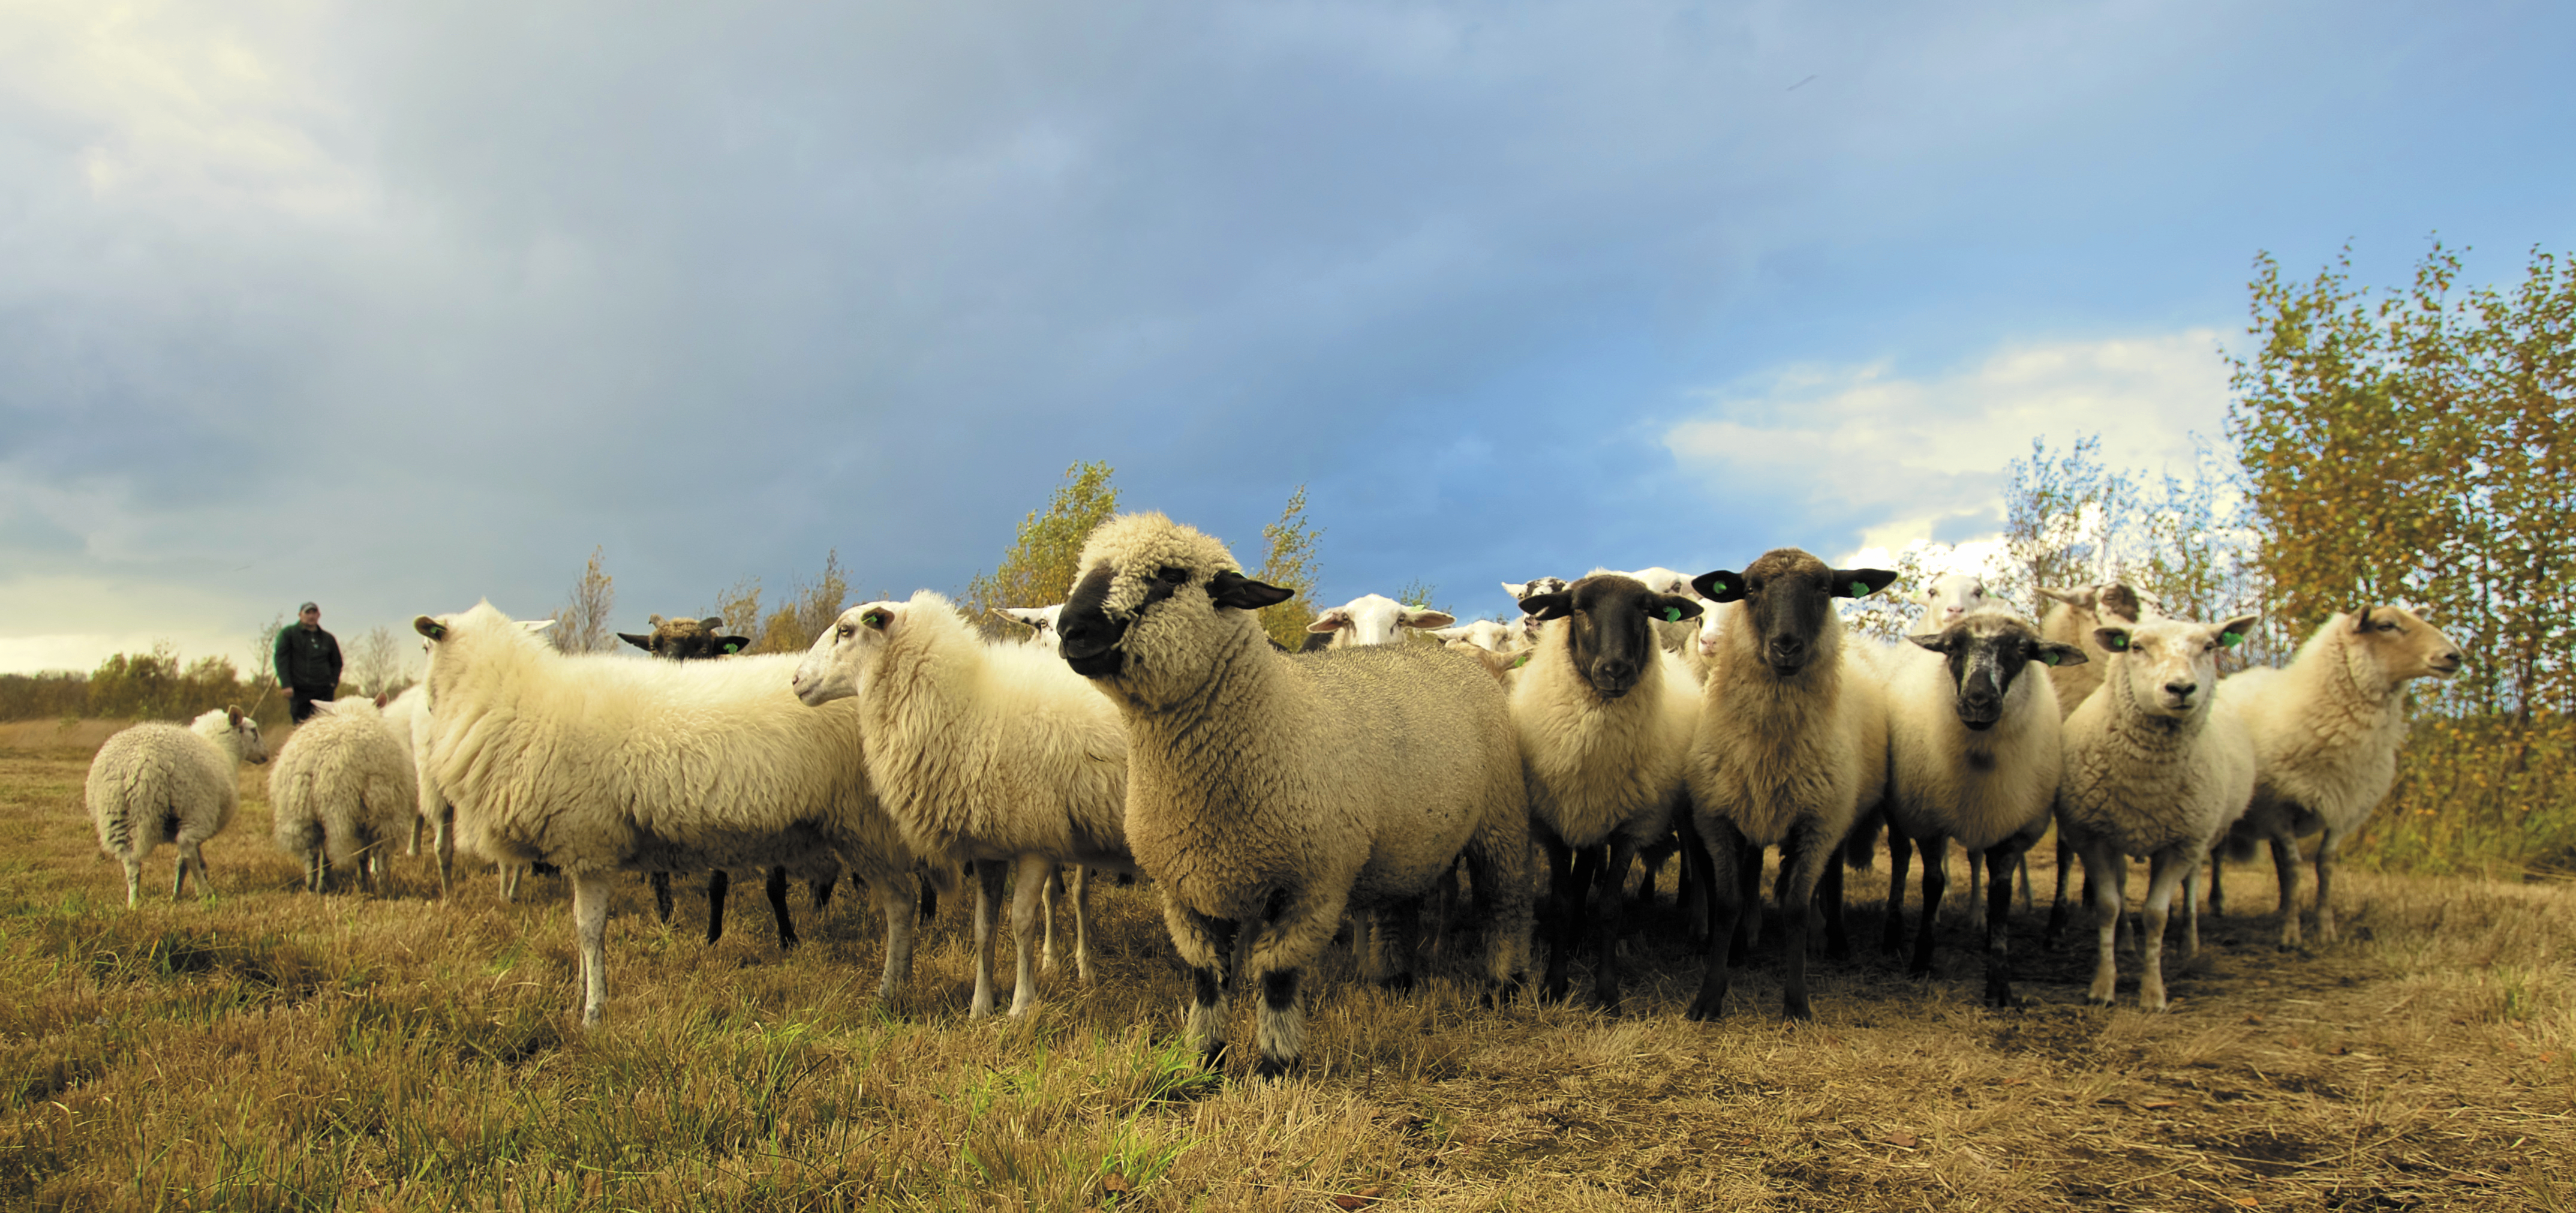 sheep pictures pexels free stock photos